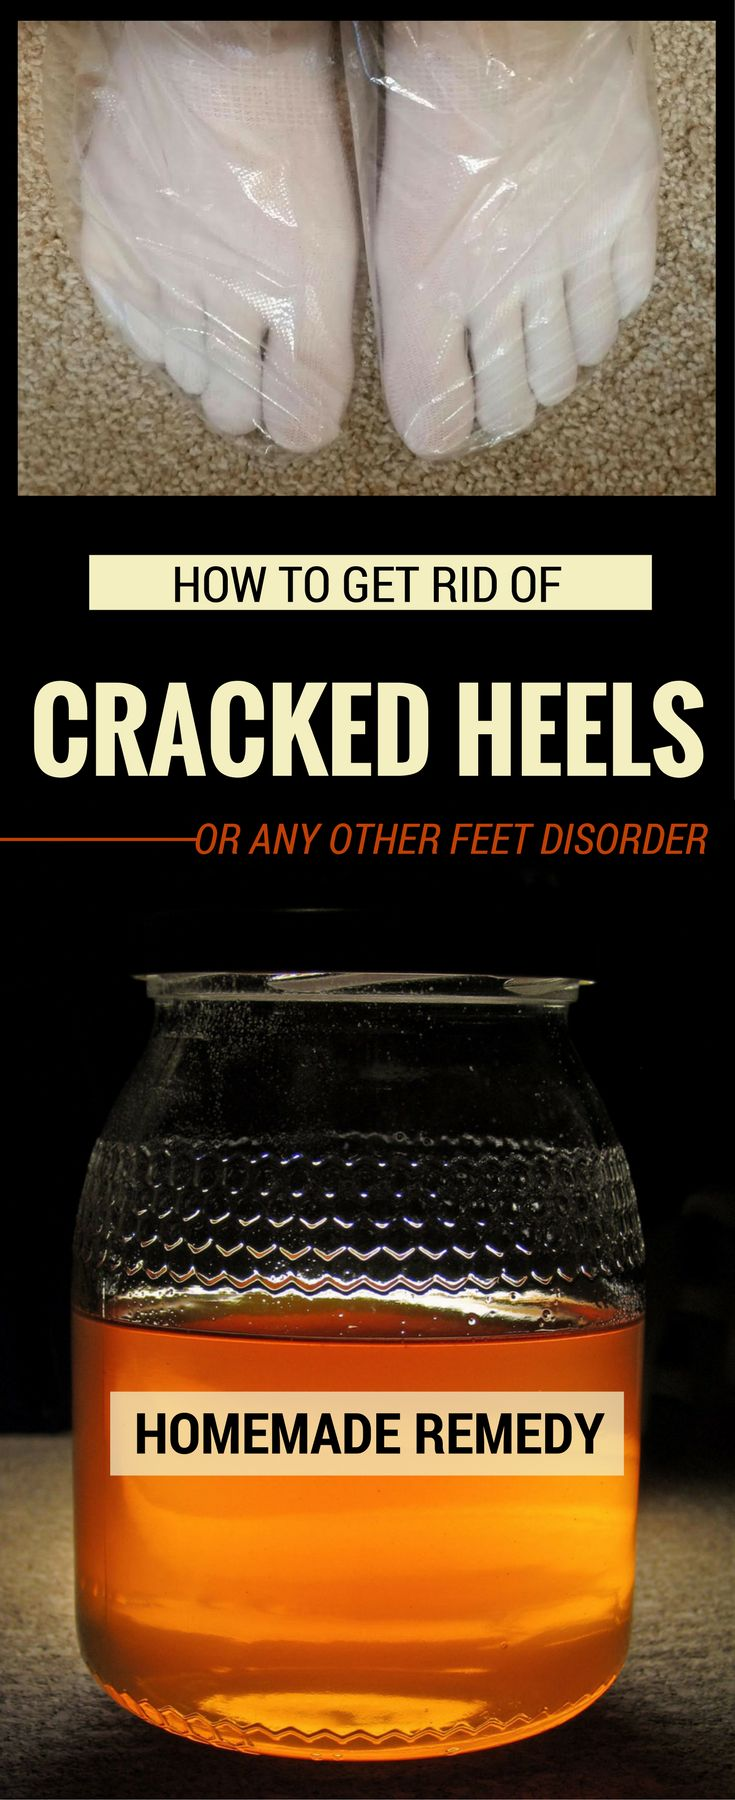 How To Get Rid Of Cracked Heels Or Any Other Feet Disorder? - BeautyHealther.org